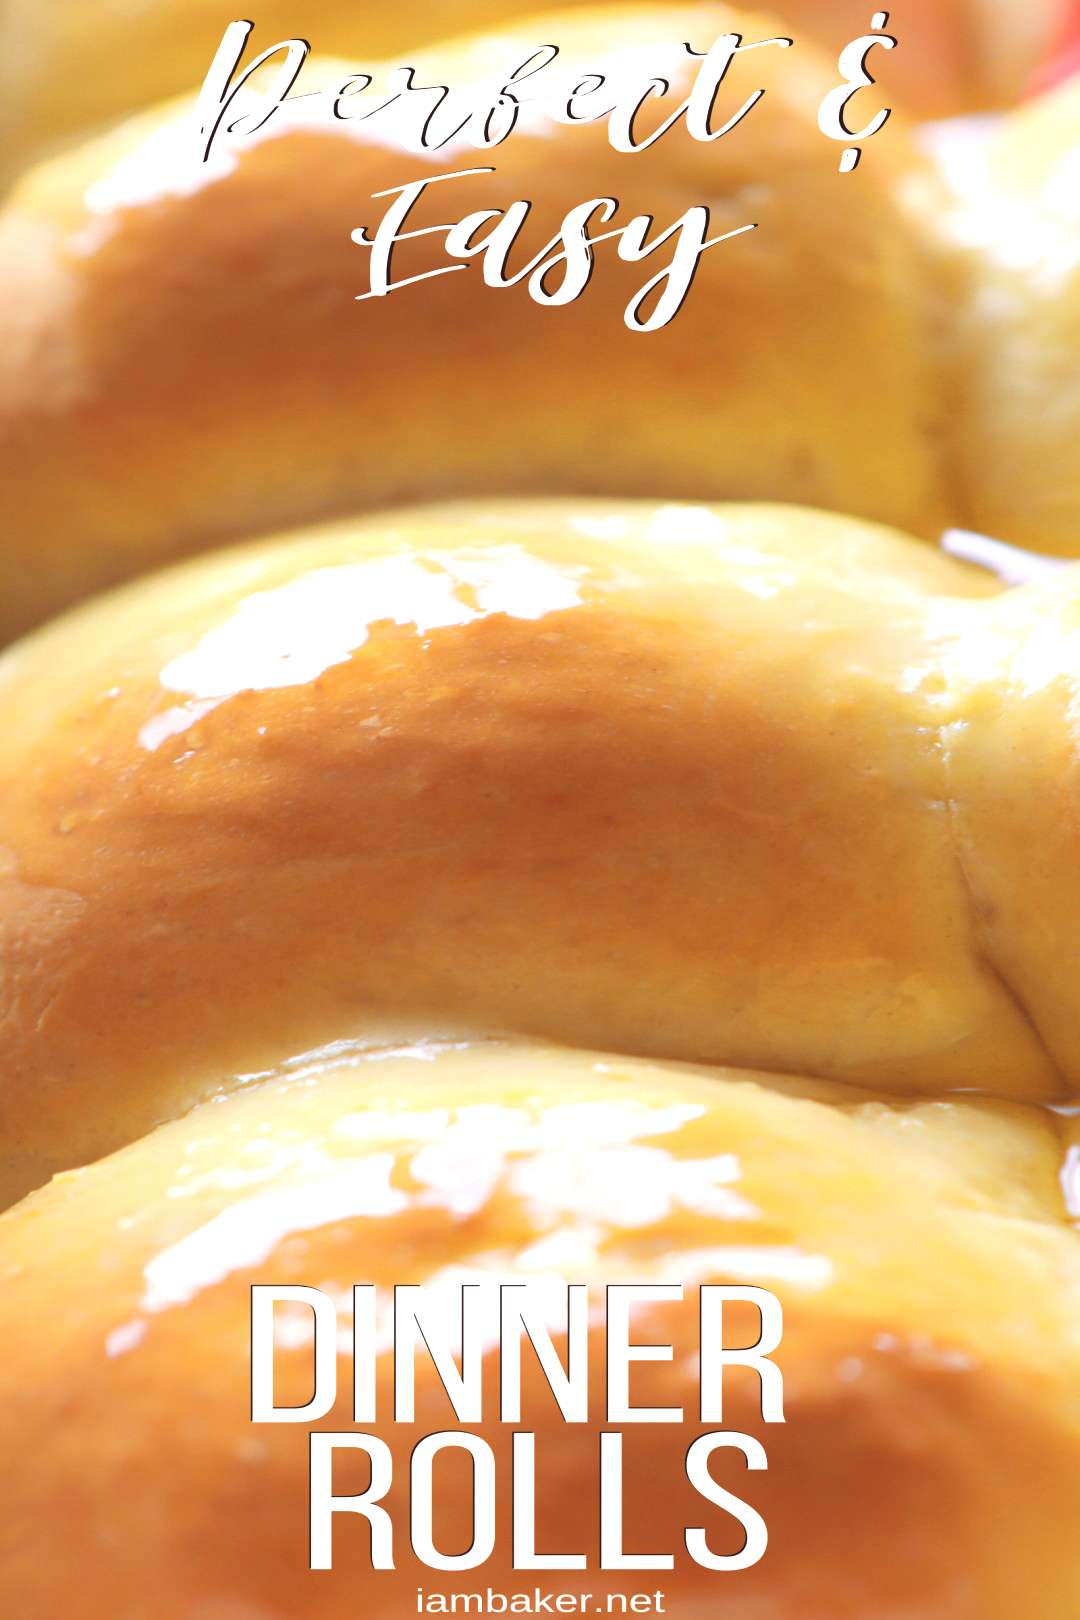 This recipe has been handed down for generations! Homemade dinner rolls that are easy peasy!